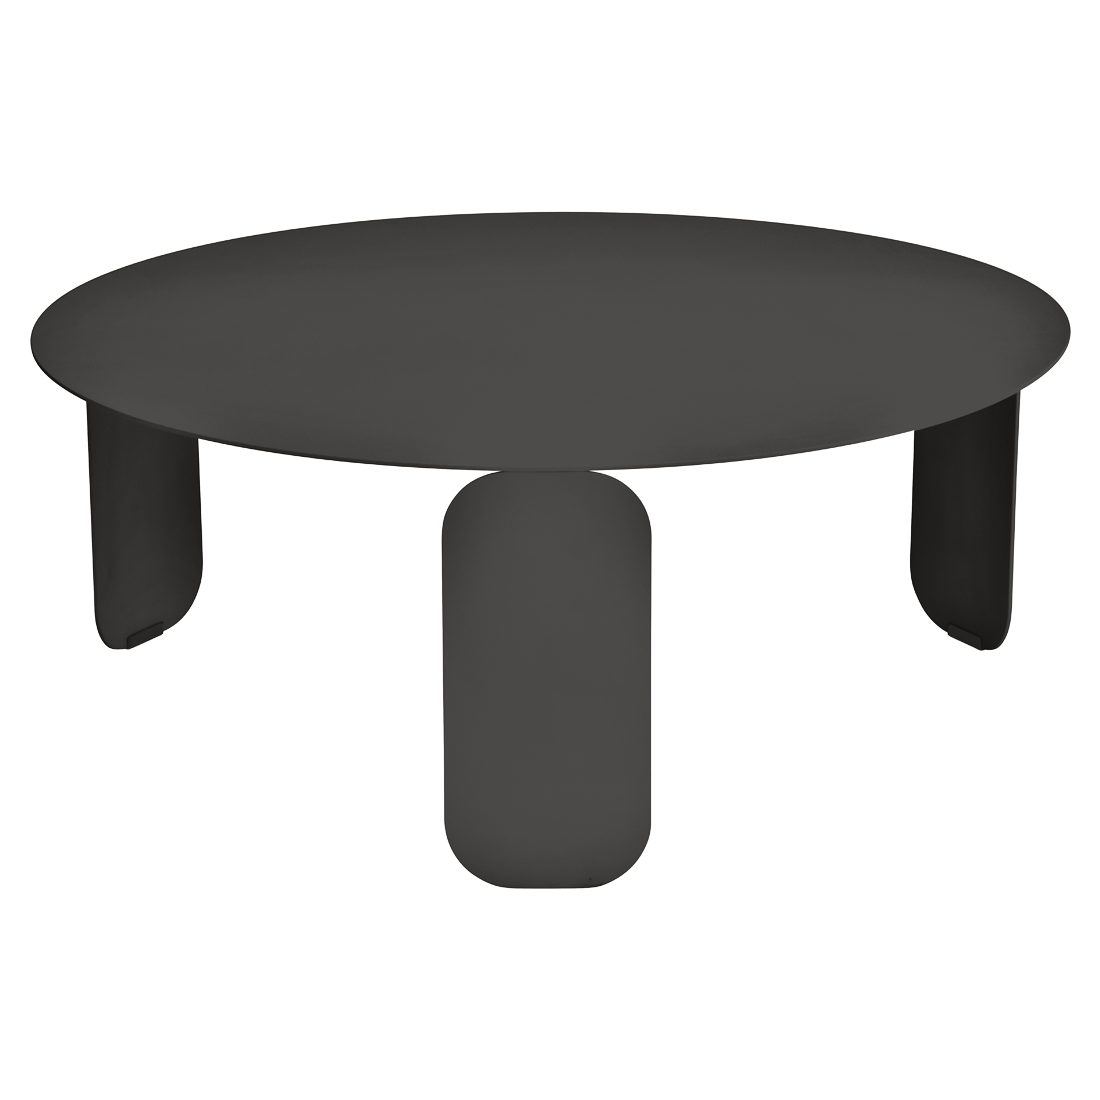 table basse metal, table basse design, table basse fermob, table basse noir